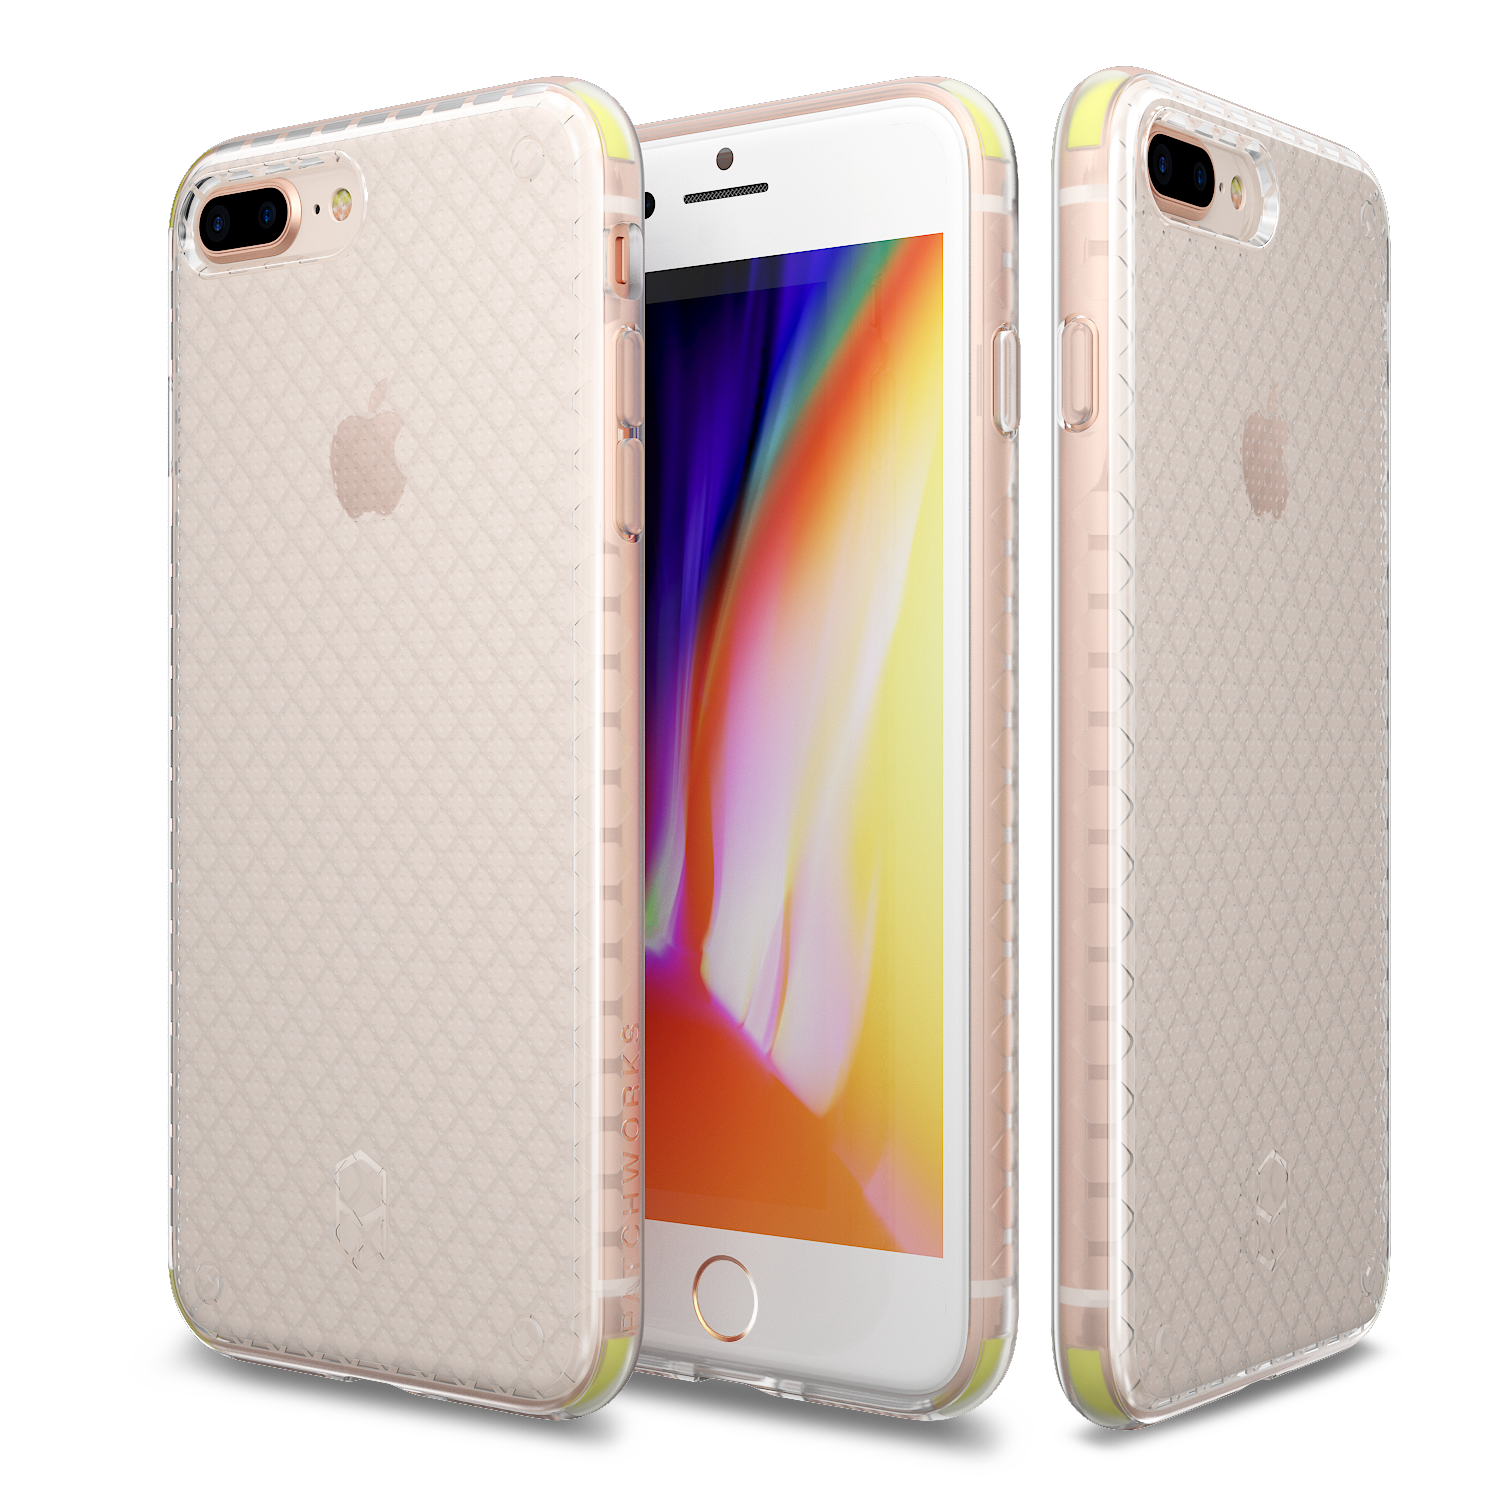 IPHONE 8 PLUS / 7 PLUS CASE - FLEXGUARD CLEAR